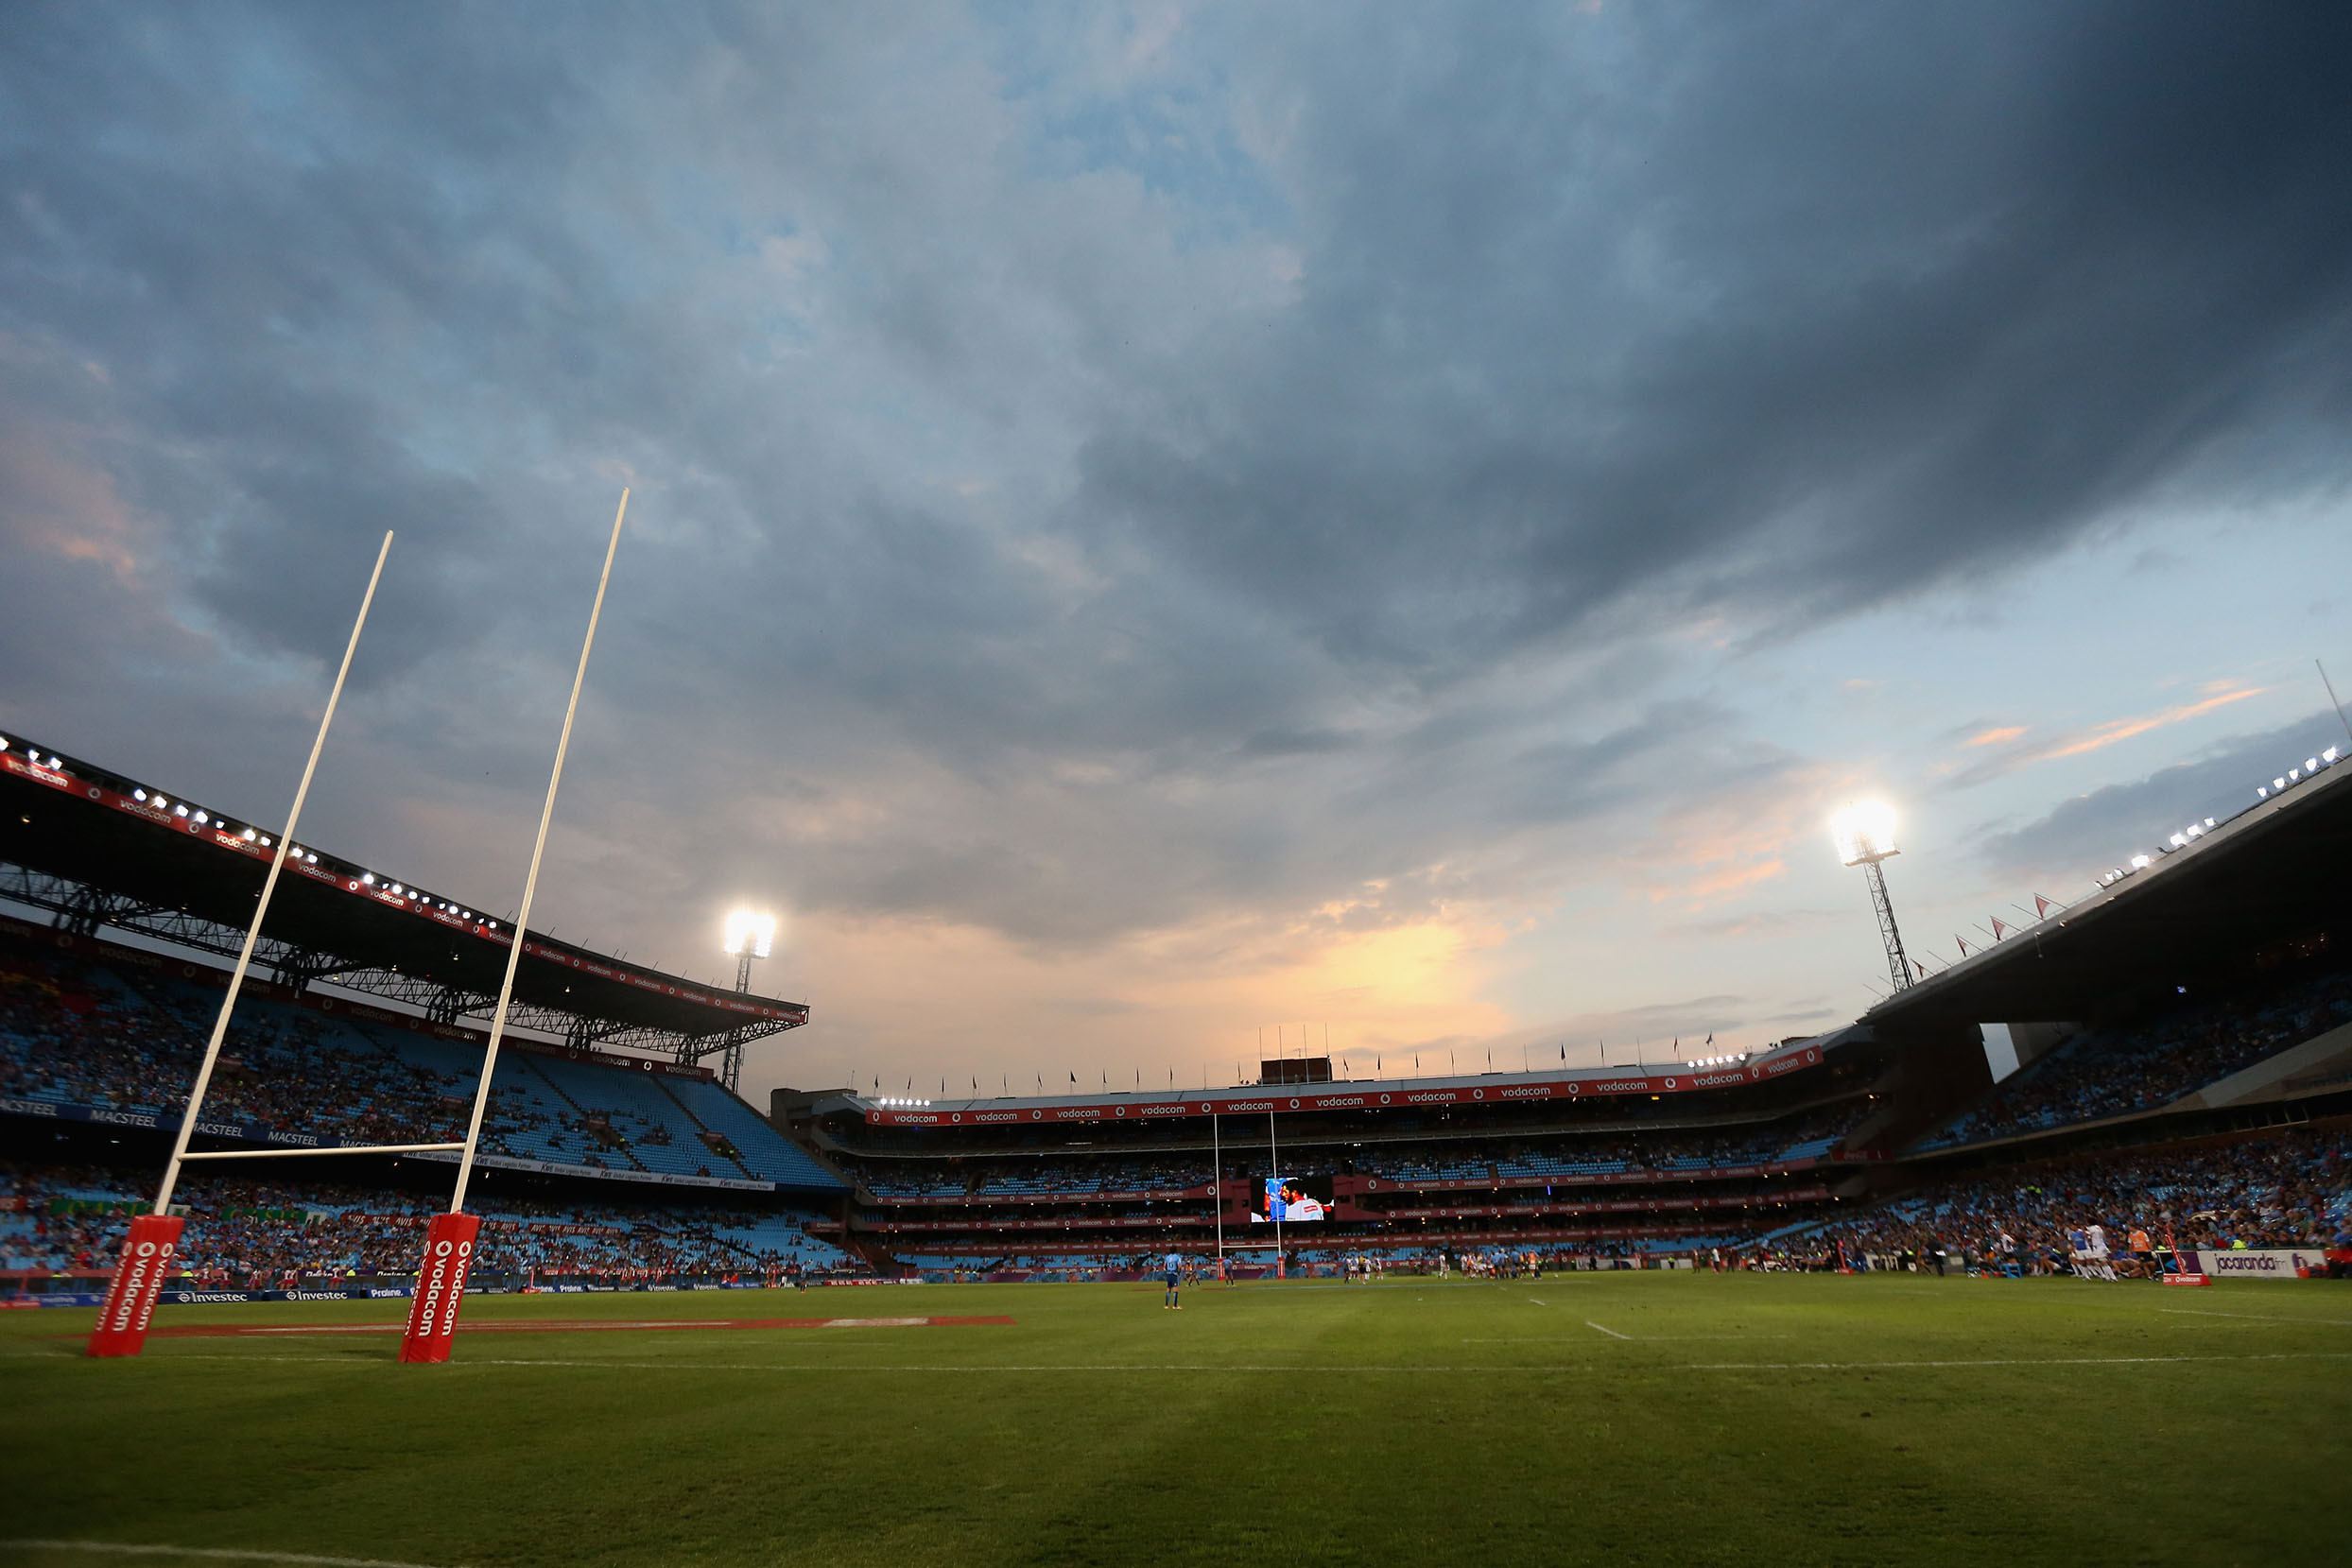 2 March 2018: The sun sets over Loftus Versfeld Stadium in Pretoria during a round 3 Super Rugby match between the Blue Bulls and the Western Force. (Photo by Warren Little/Getty Images)